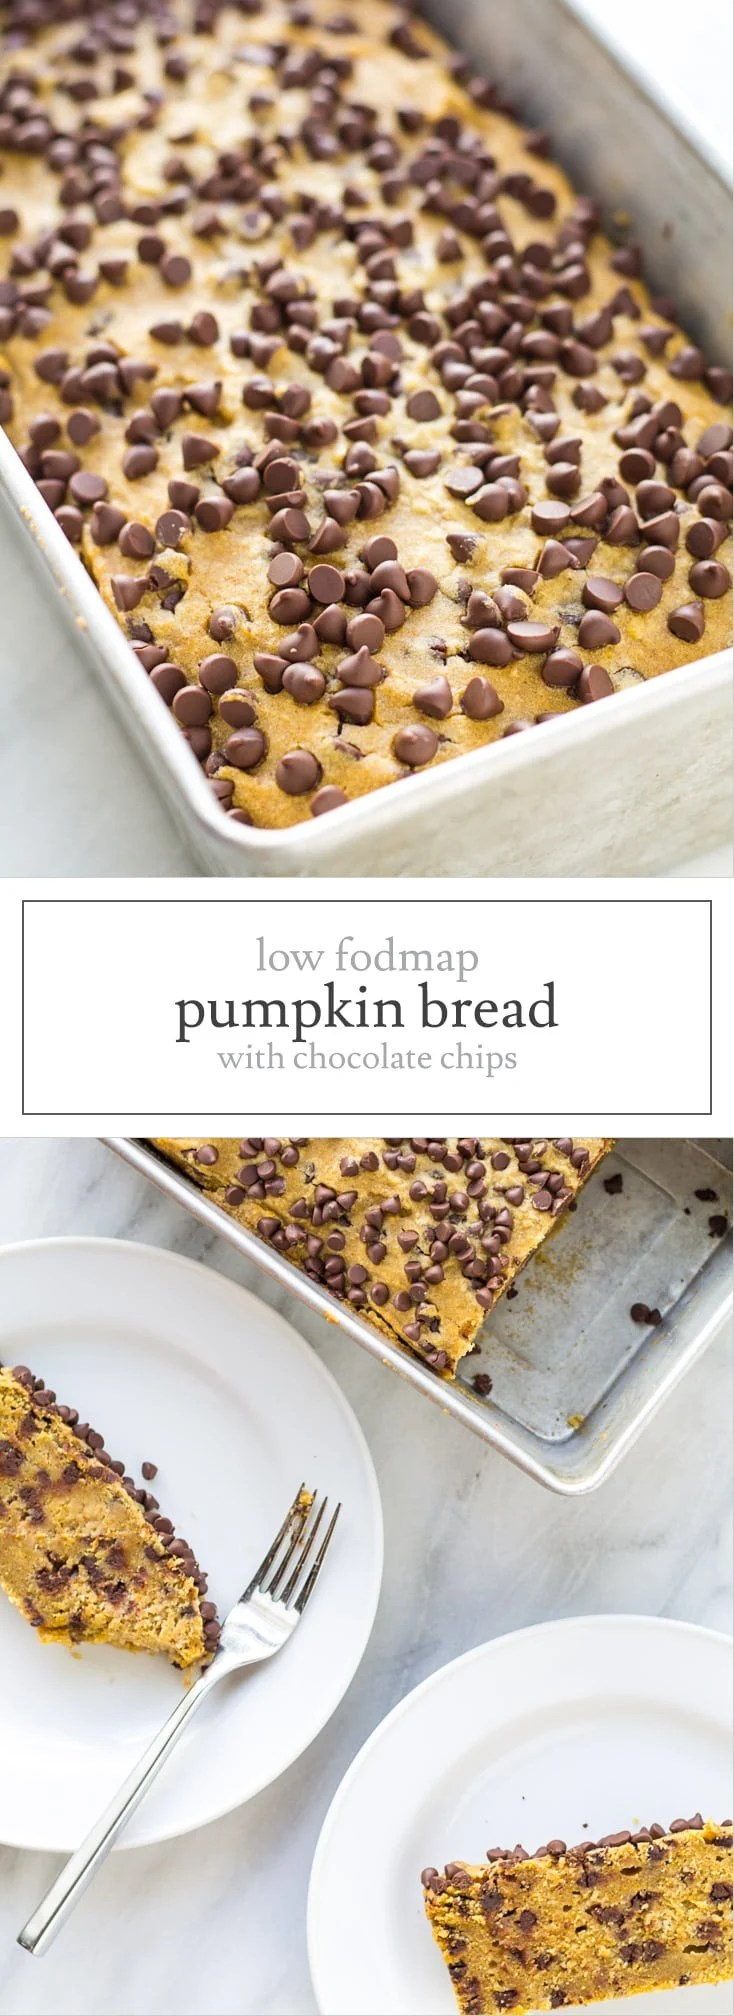 Filled with fall flavors and topped with chocolate, this Low FODMAP Pumpkin Bread with Chocolate Chips is perfect for a gluten free breakfast or sweet treat!